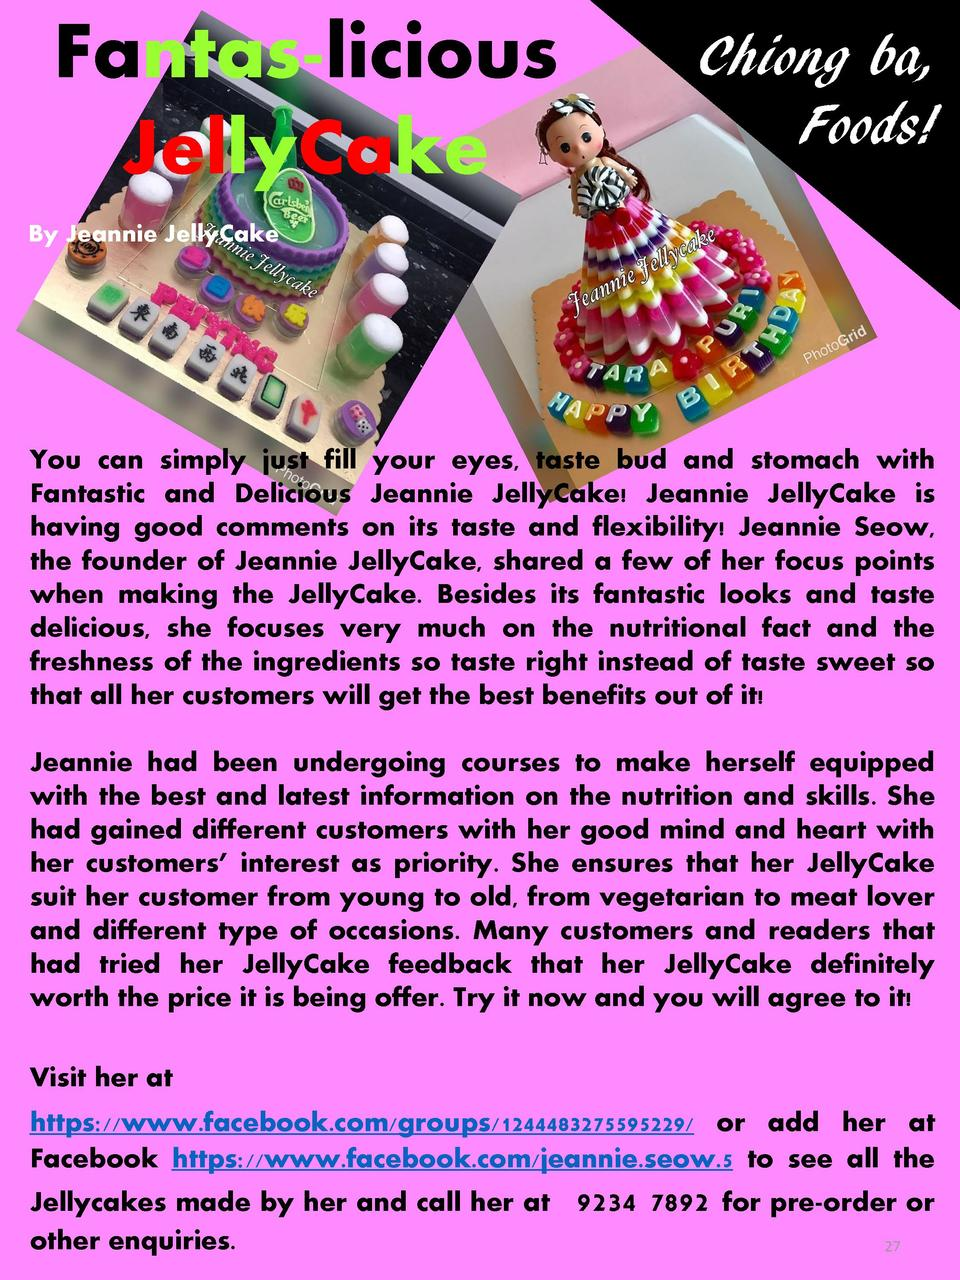 Fantas-licious JellyCake  Chiong ba, Foods   By Jeannie JellyCake  You can simply just fill your eyes, taste bud and stoma...